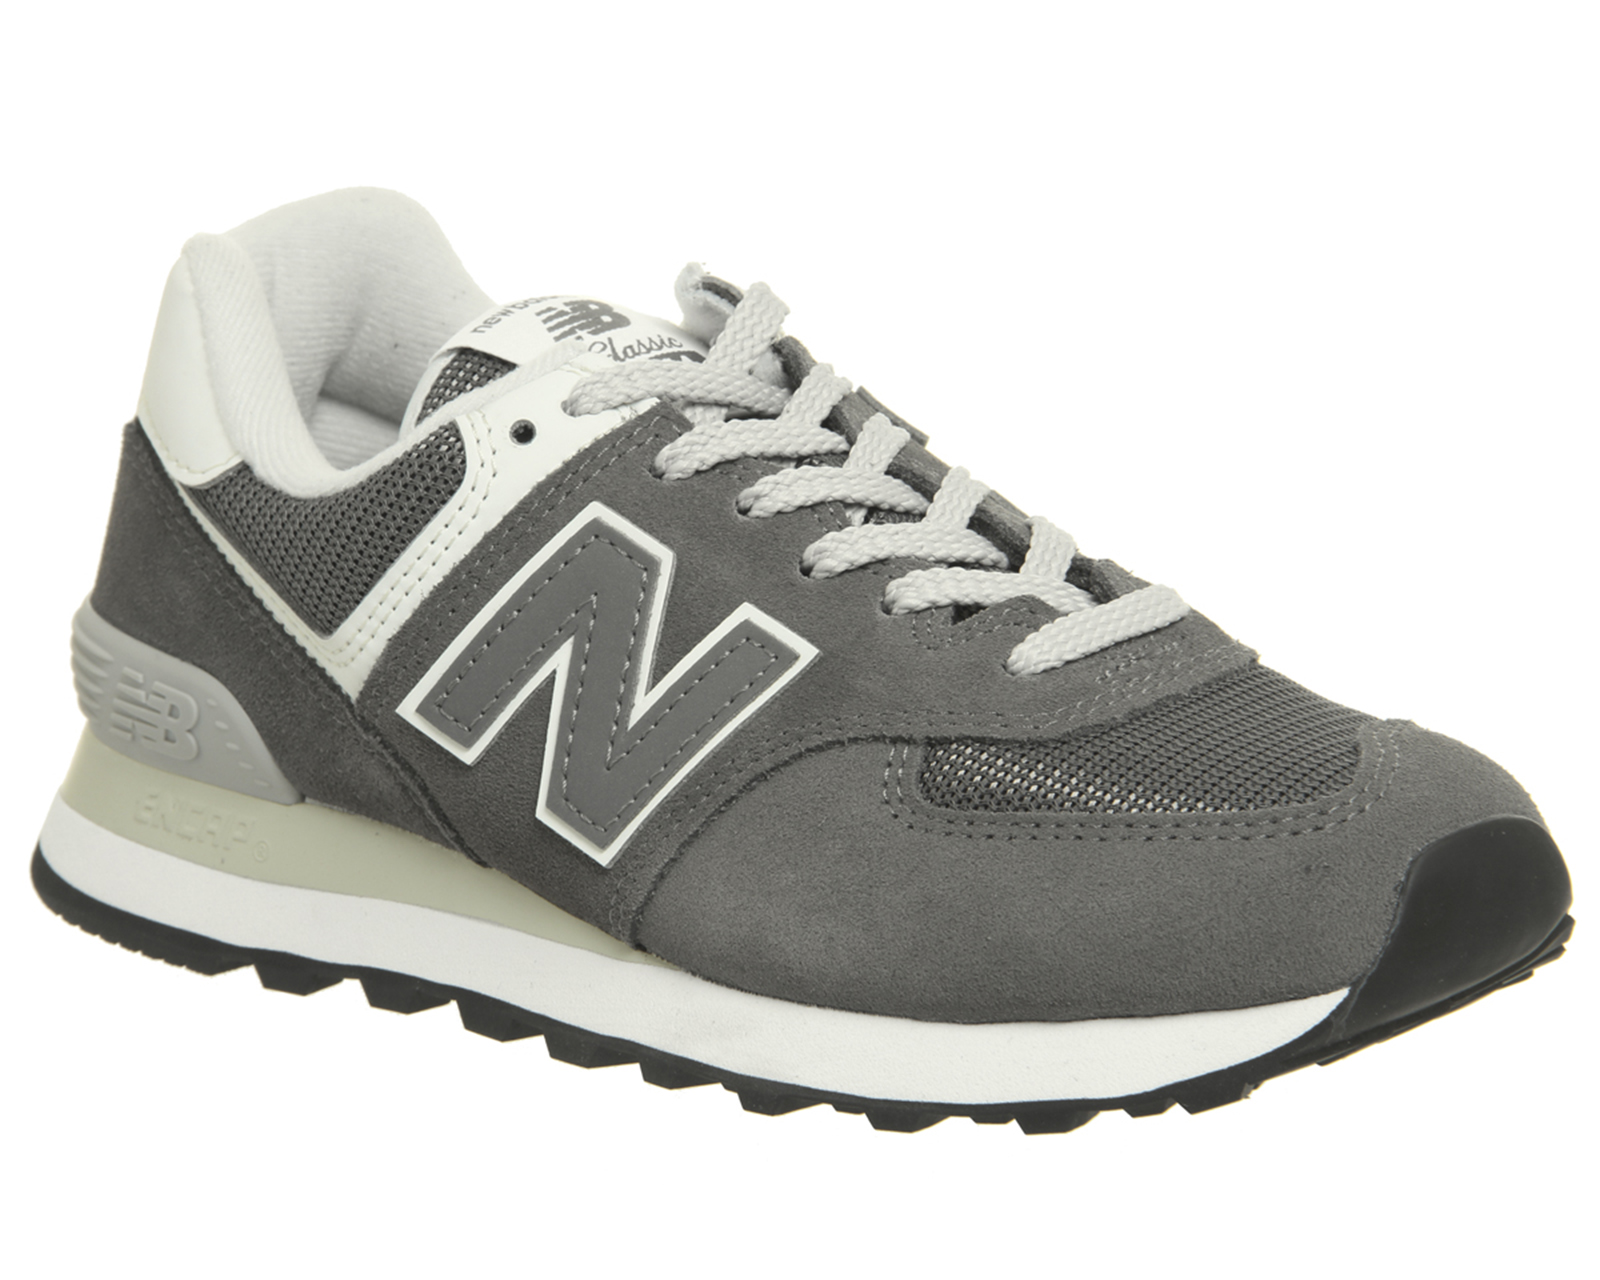 Sentinel Womens New Balance 574 Trainers Castle Rock Trainers Shoes 4992d95e46e2